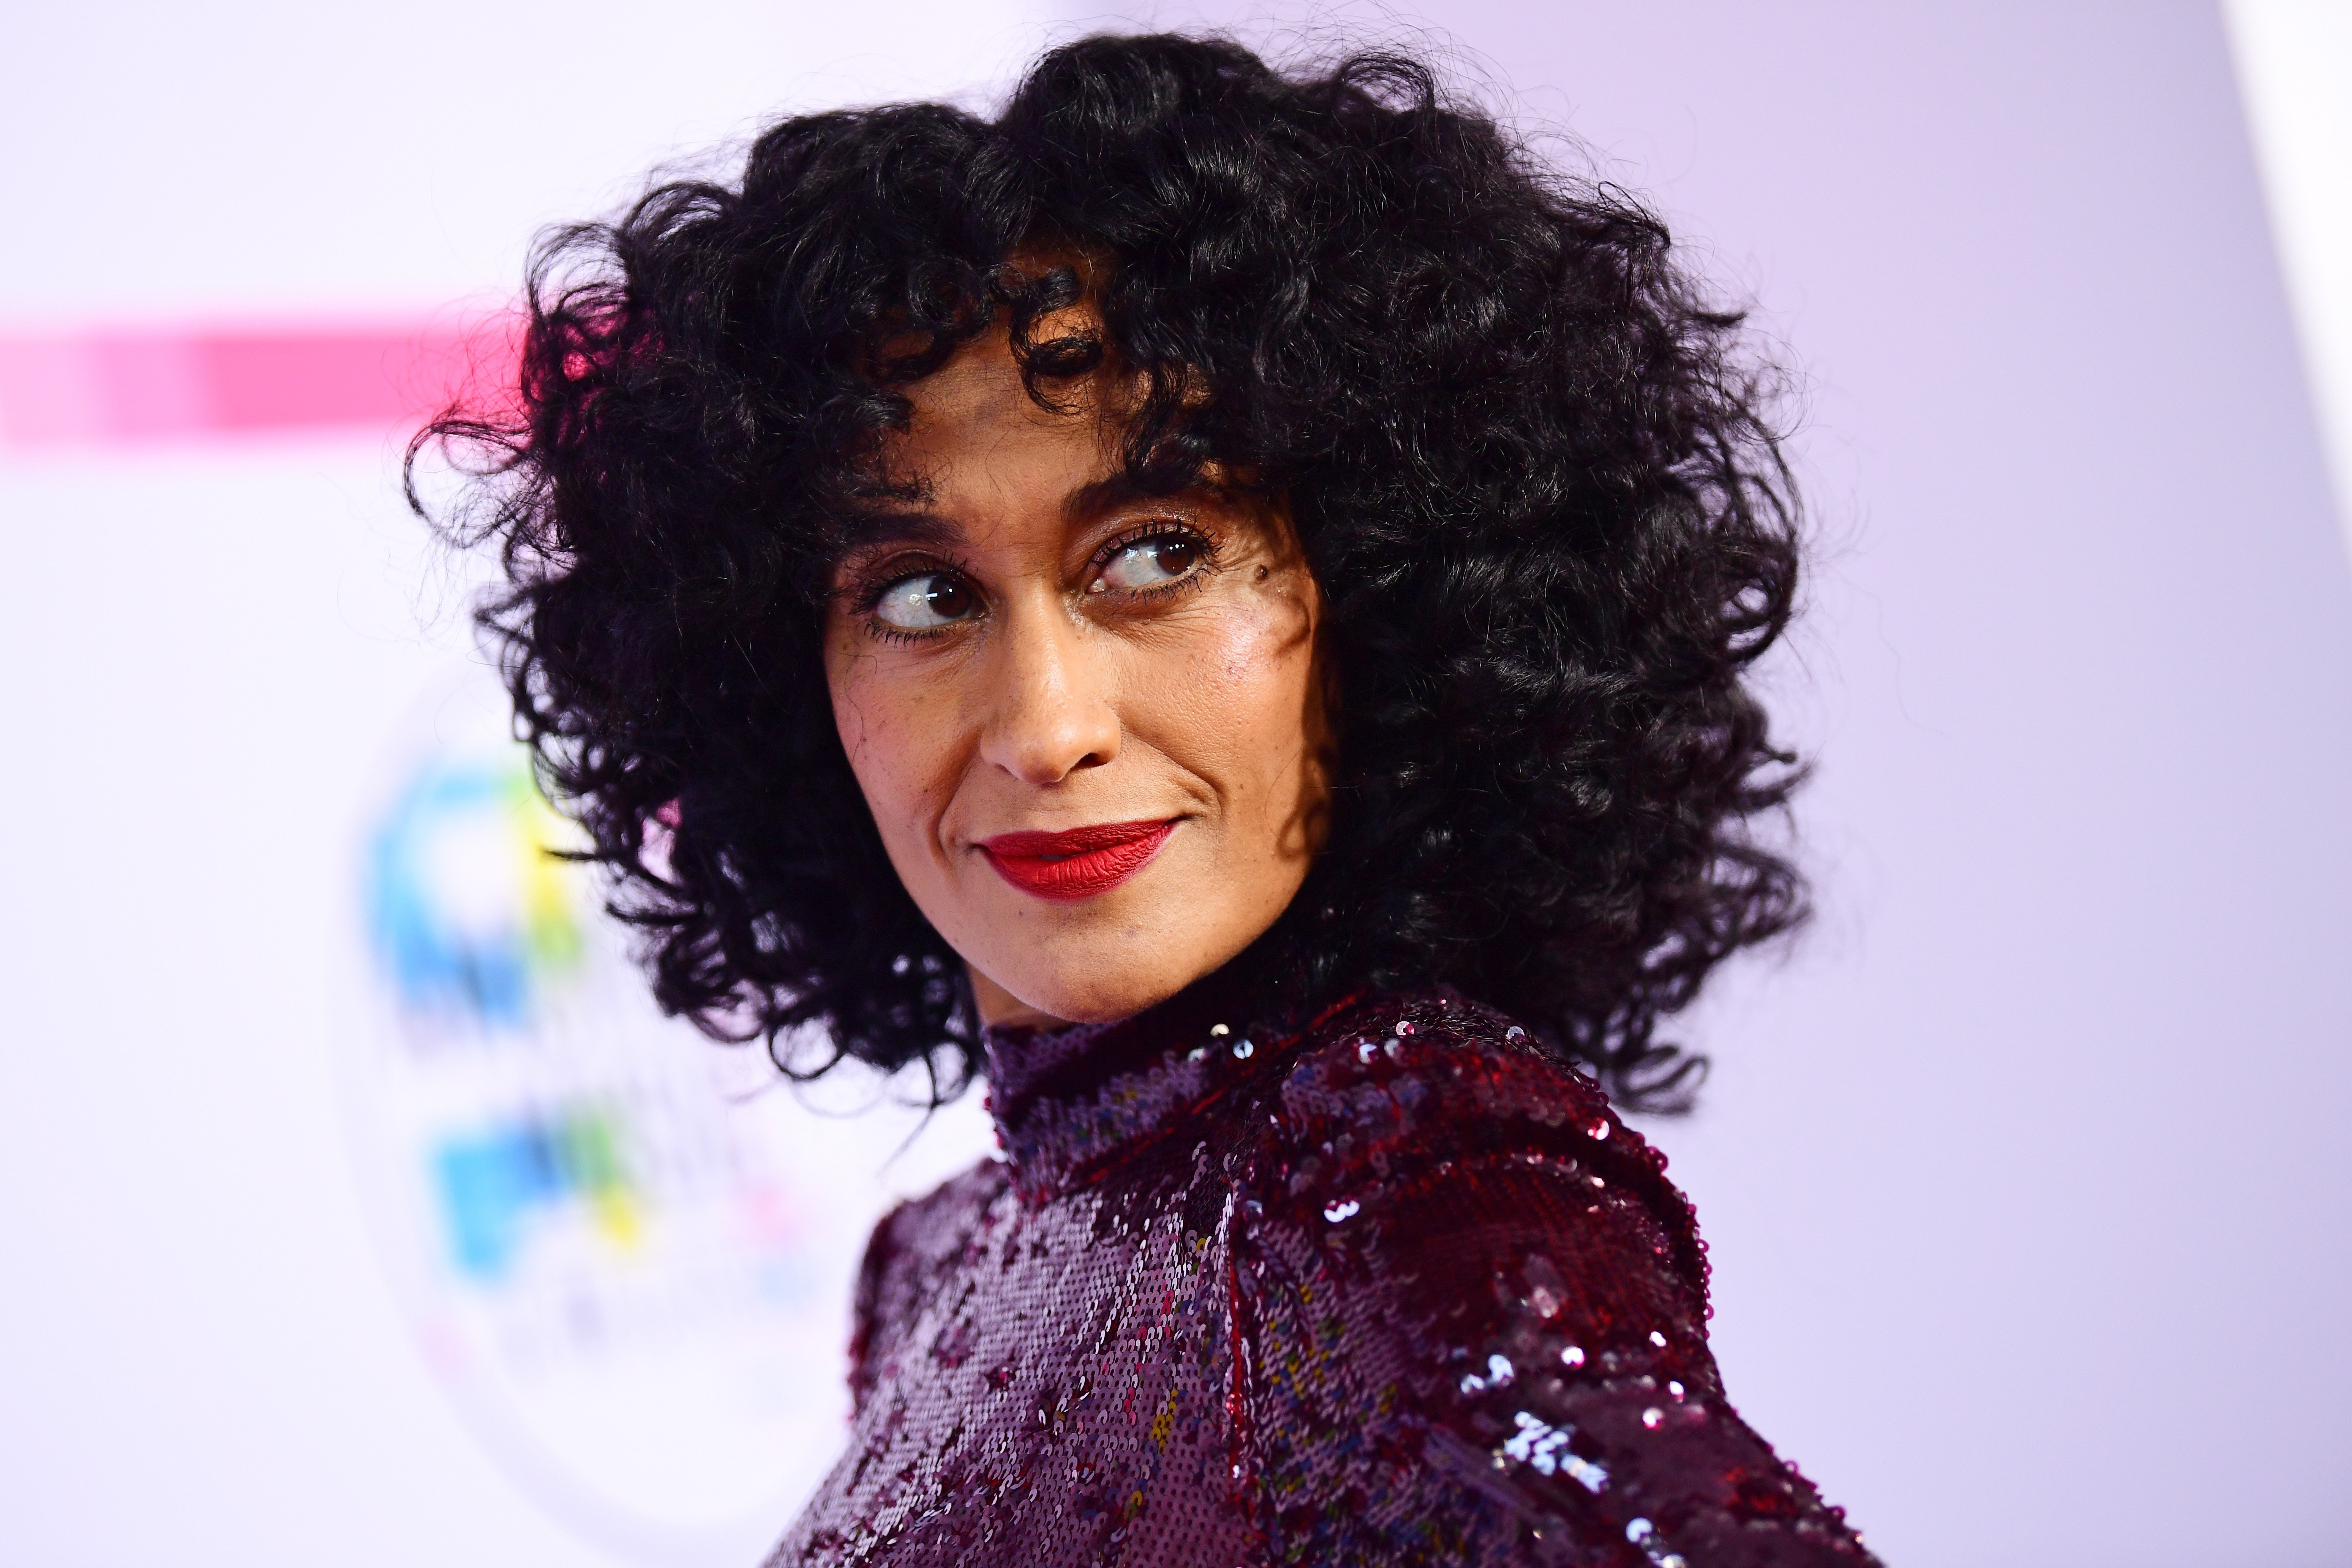 Tracee Ellis Ross pictured at the 2017 American Music Awards at Microsoft Theater on November 19, 2017 in Los Angeles, California   Source: Getty Images